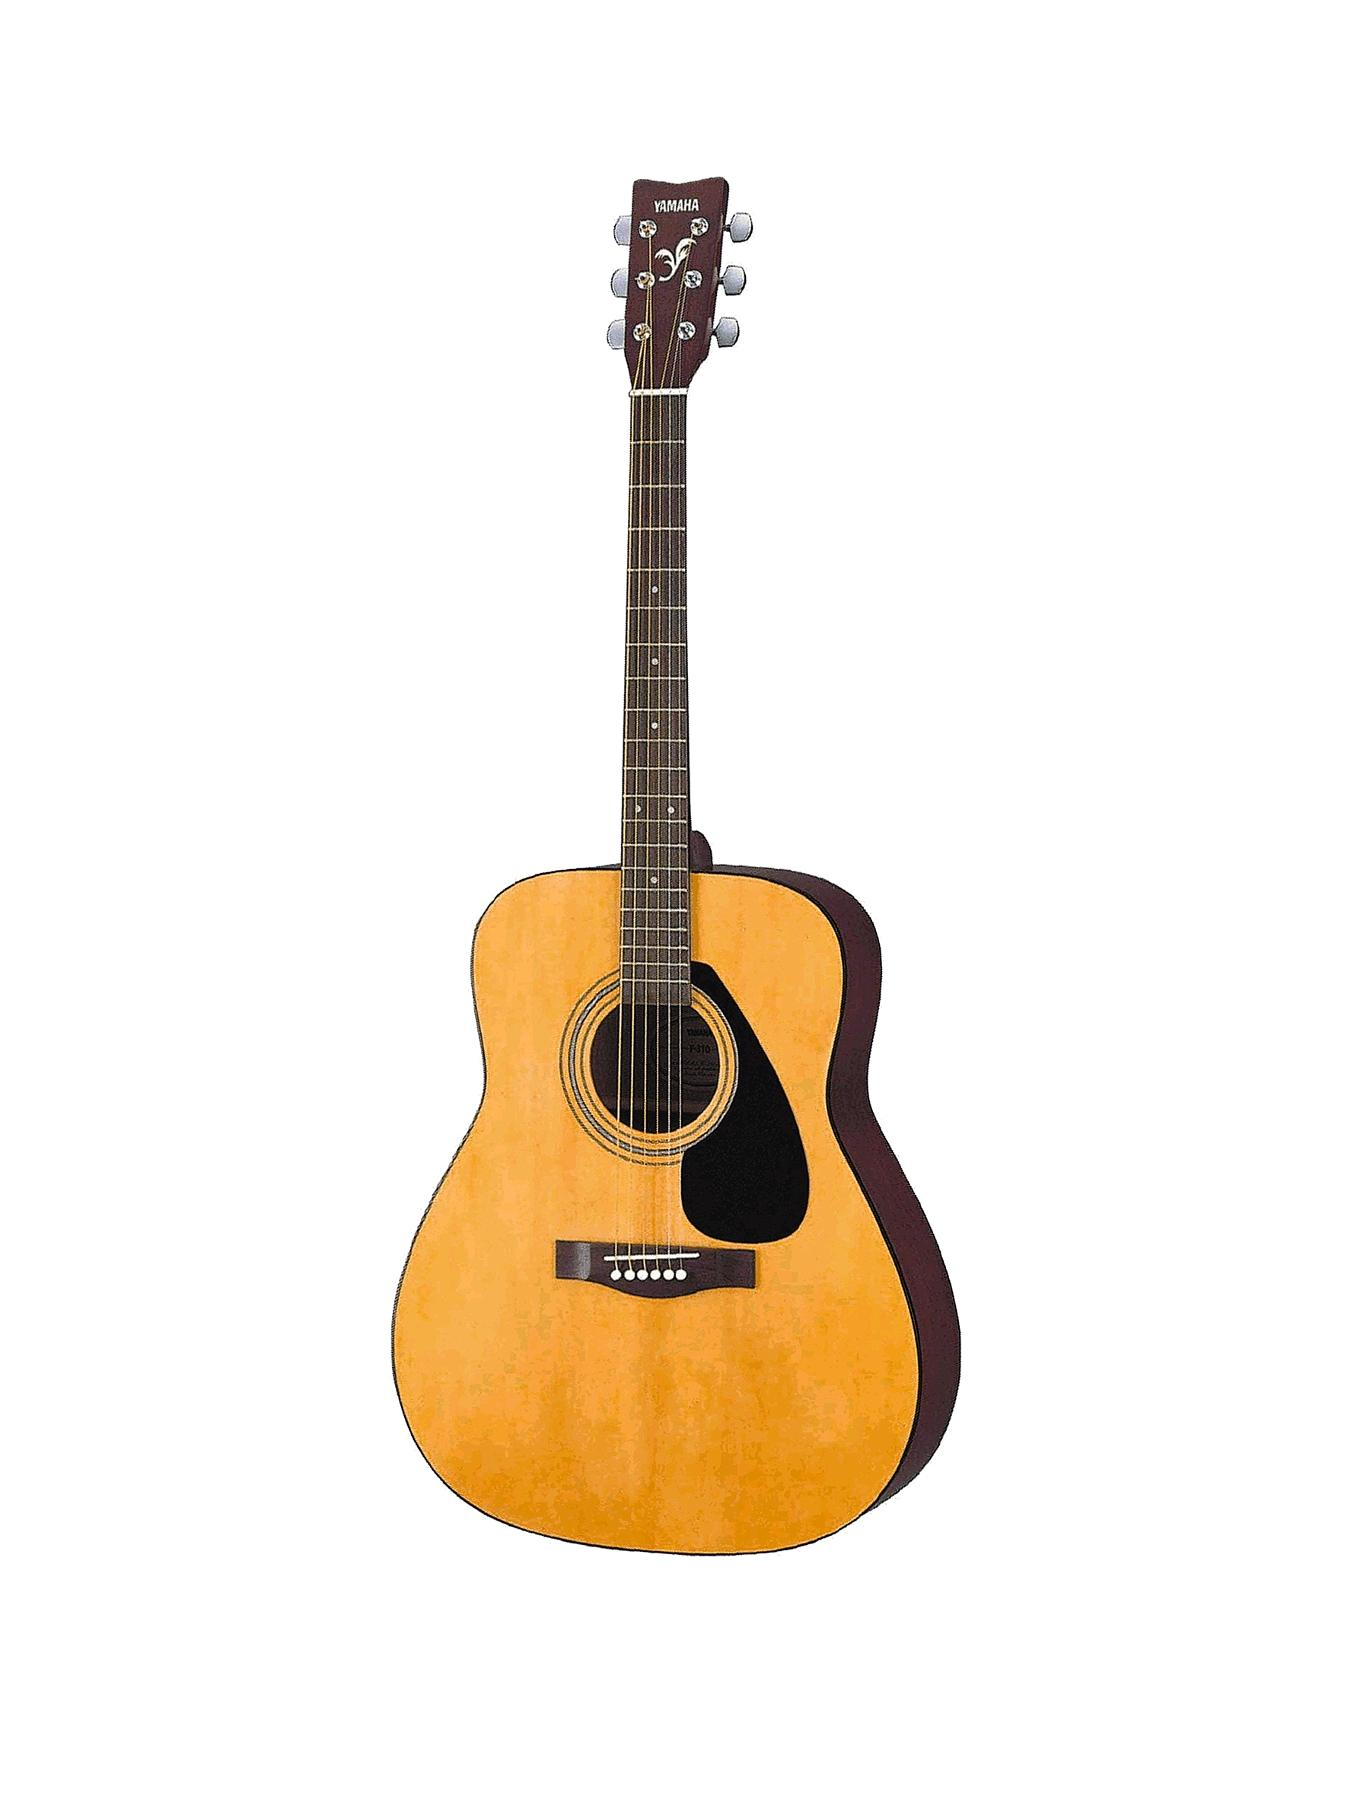 F310 Acoustic Guitar Musical Instrument.